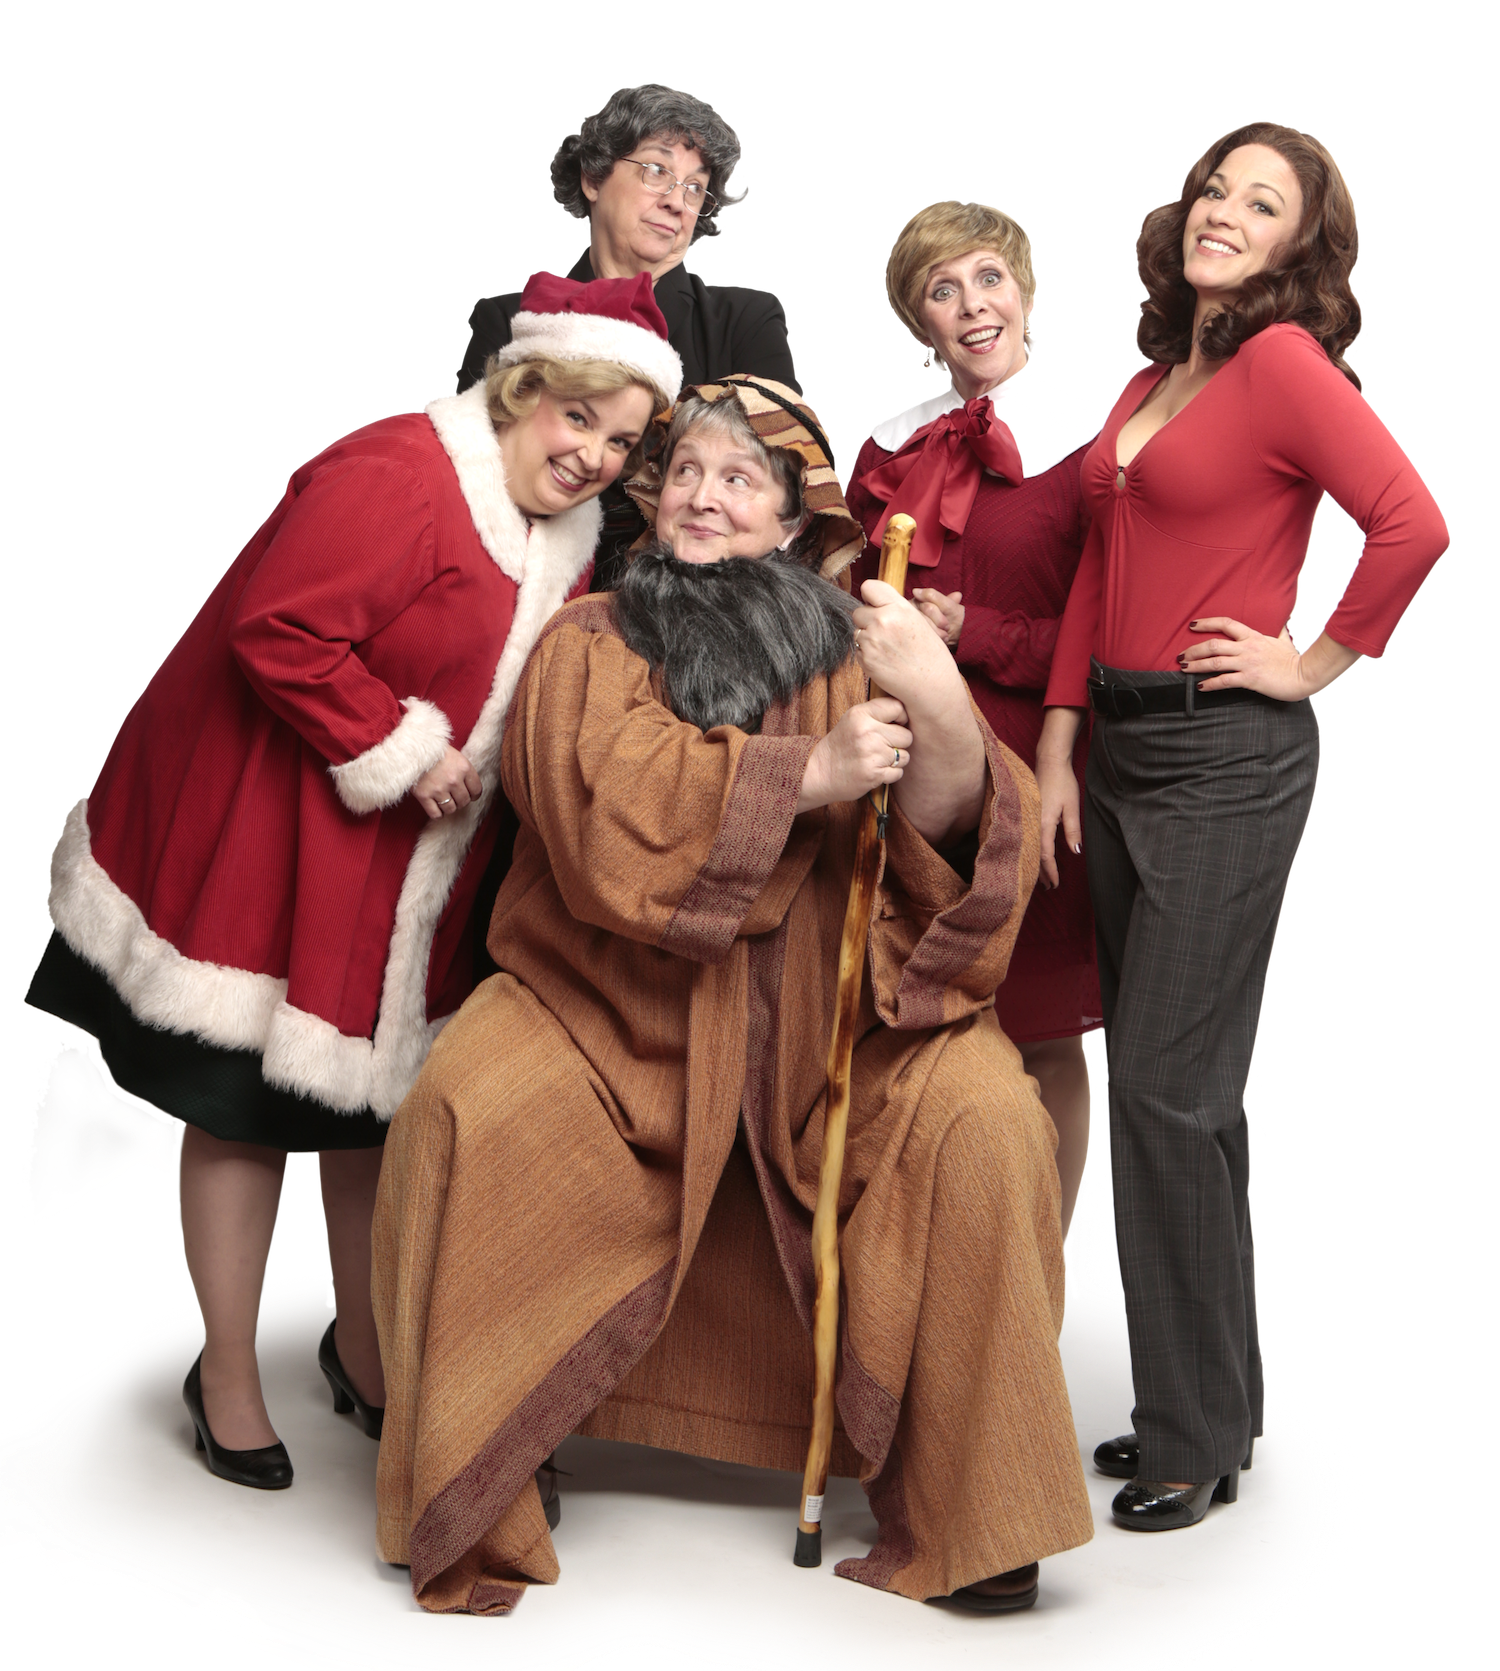 """The cast of """"The Charitable Sisterhood Christmas Spectacular"""" playing at Virginia Rep's Hanover Tavern location."""